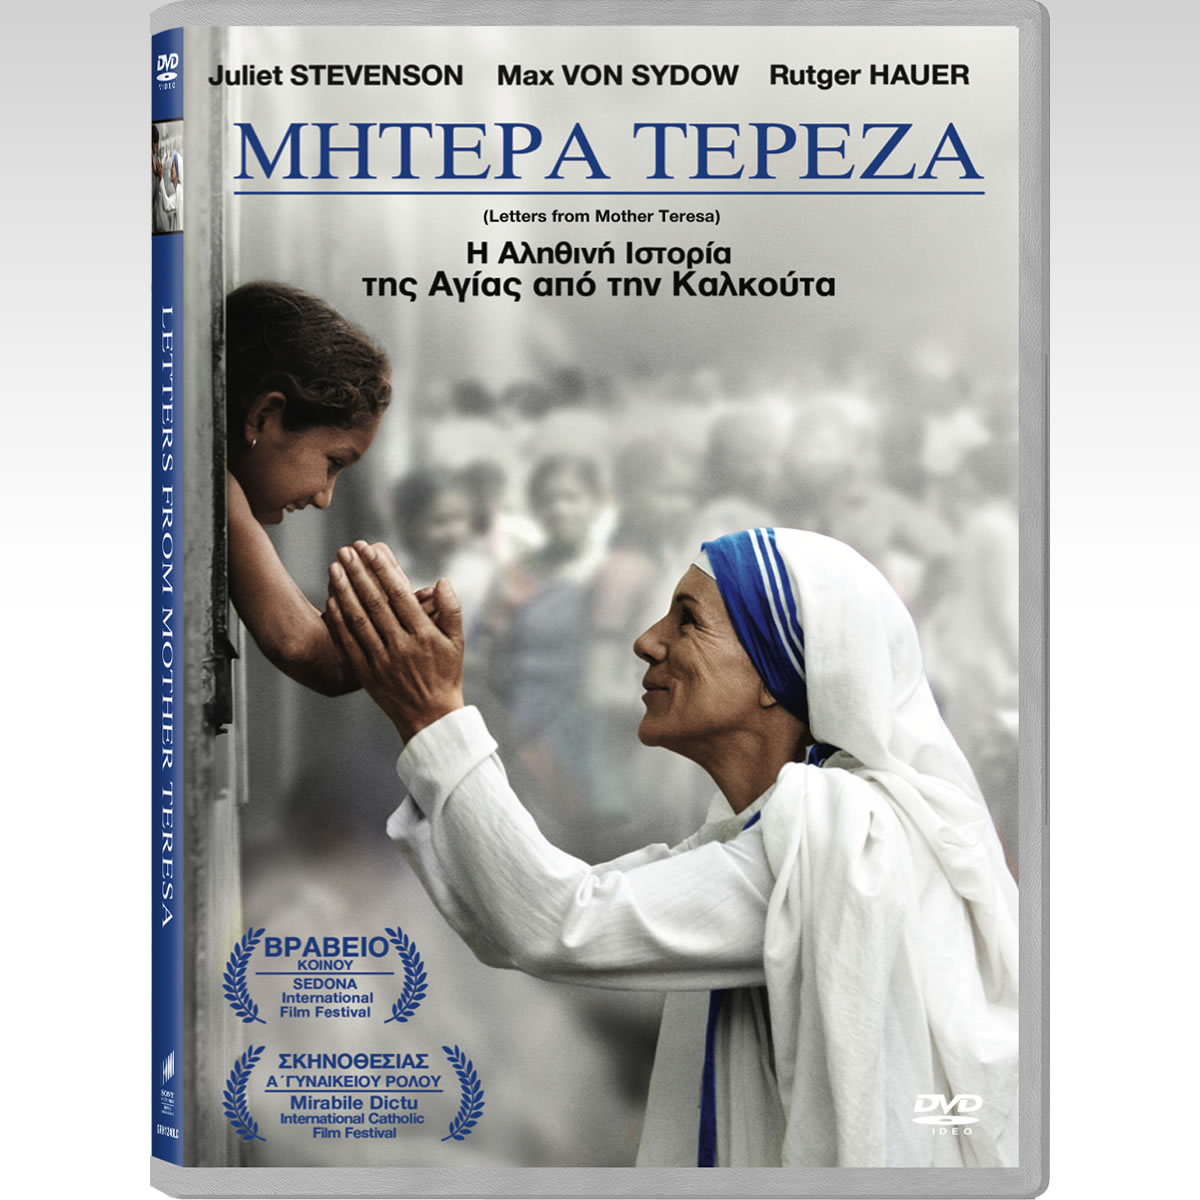 LETTERS FROM MOTHER TERESA - ΜΗΤΕΡΑ ΤΕΡΕΖΑ (DVD)